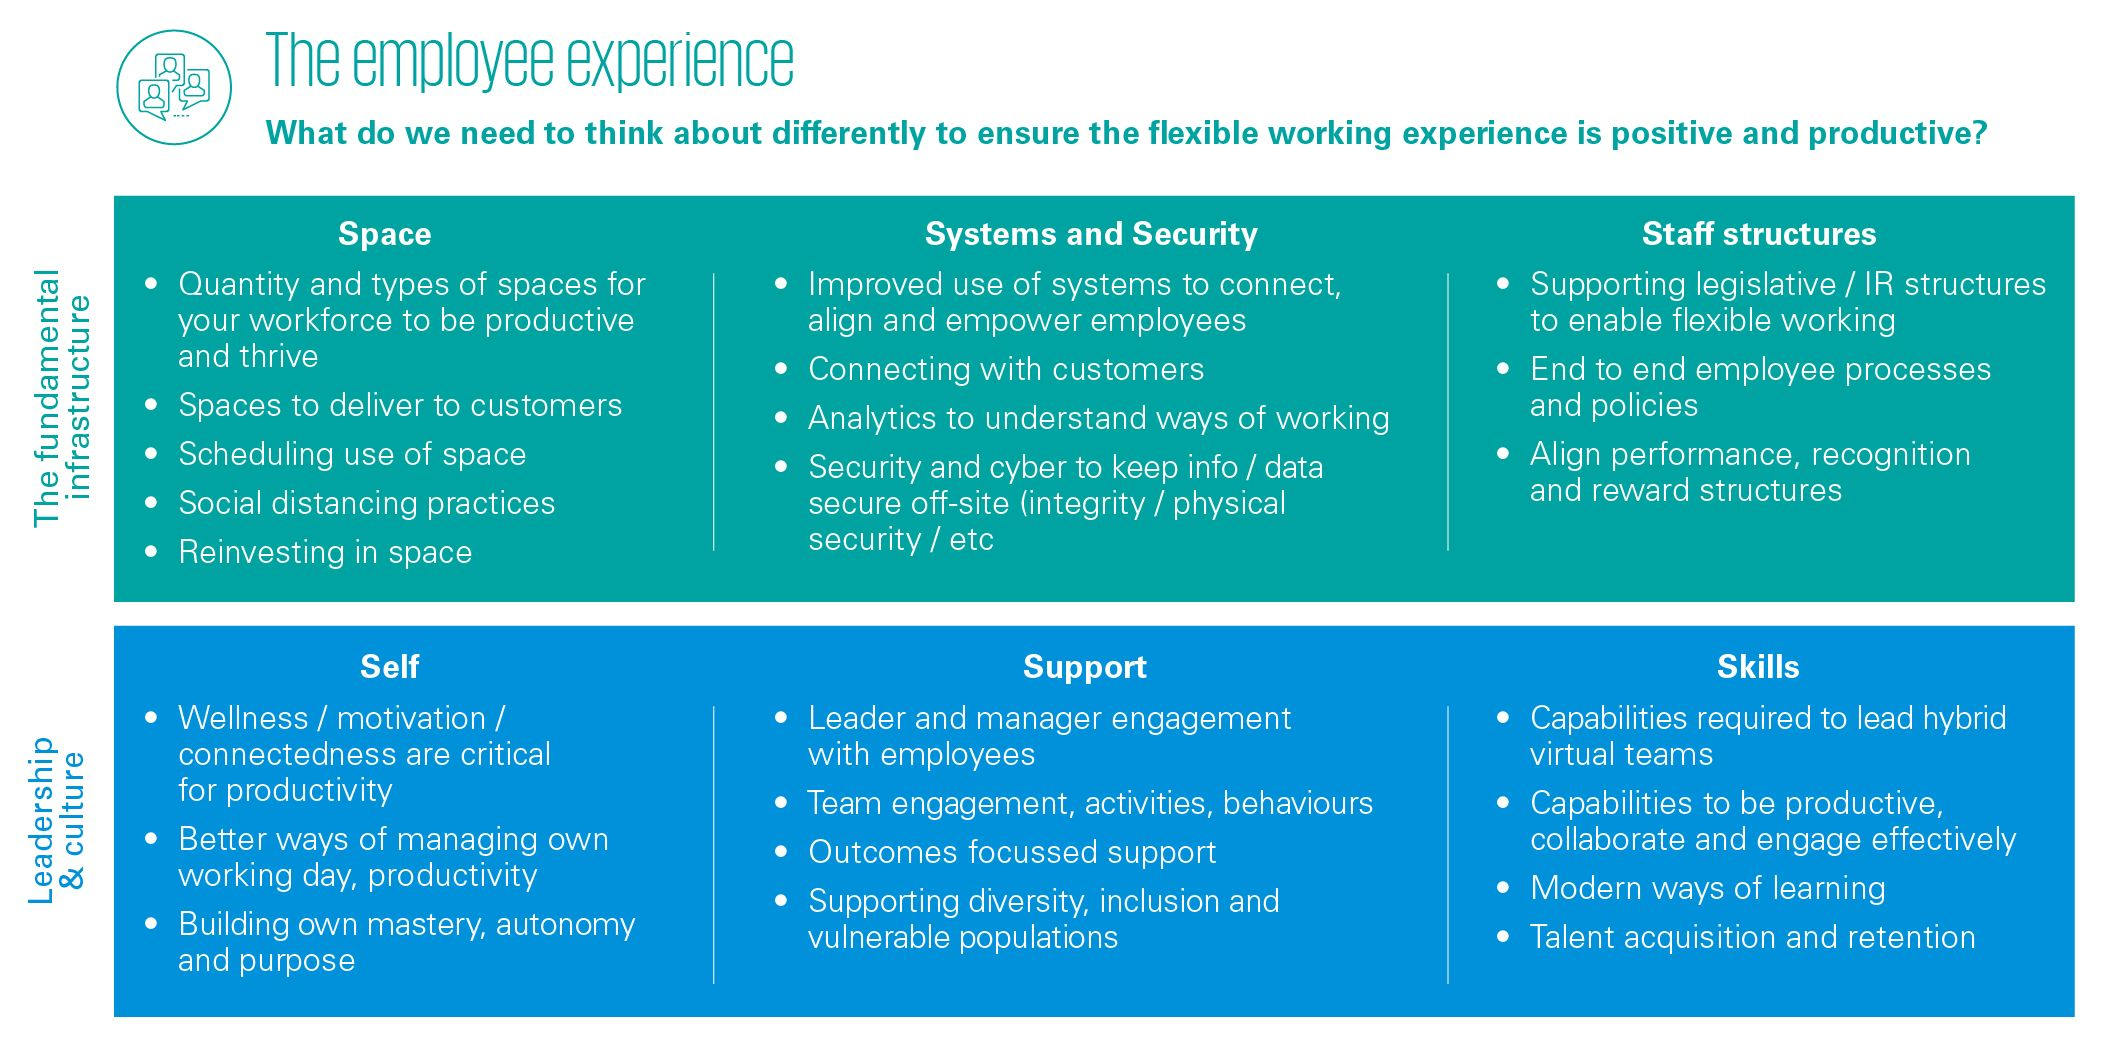 Table - The employee experience